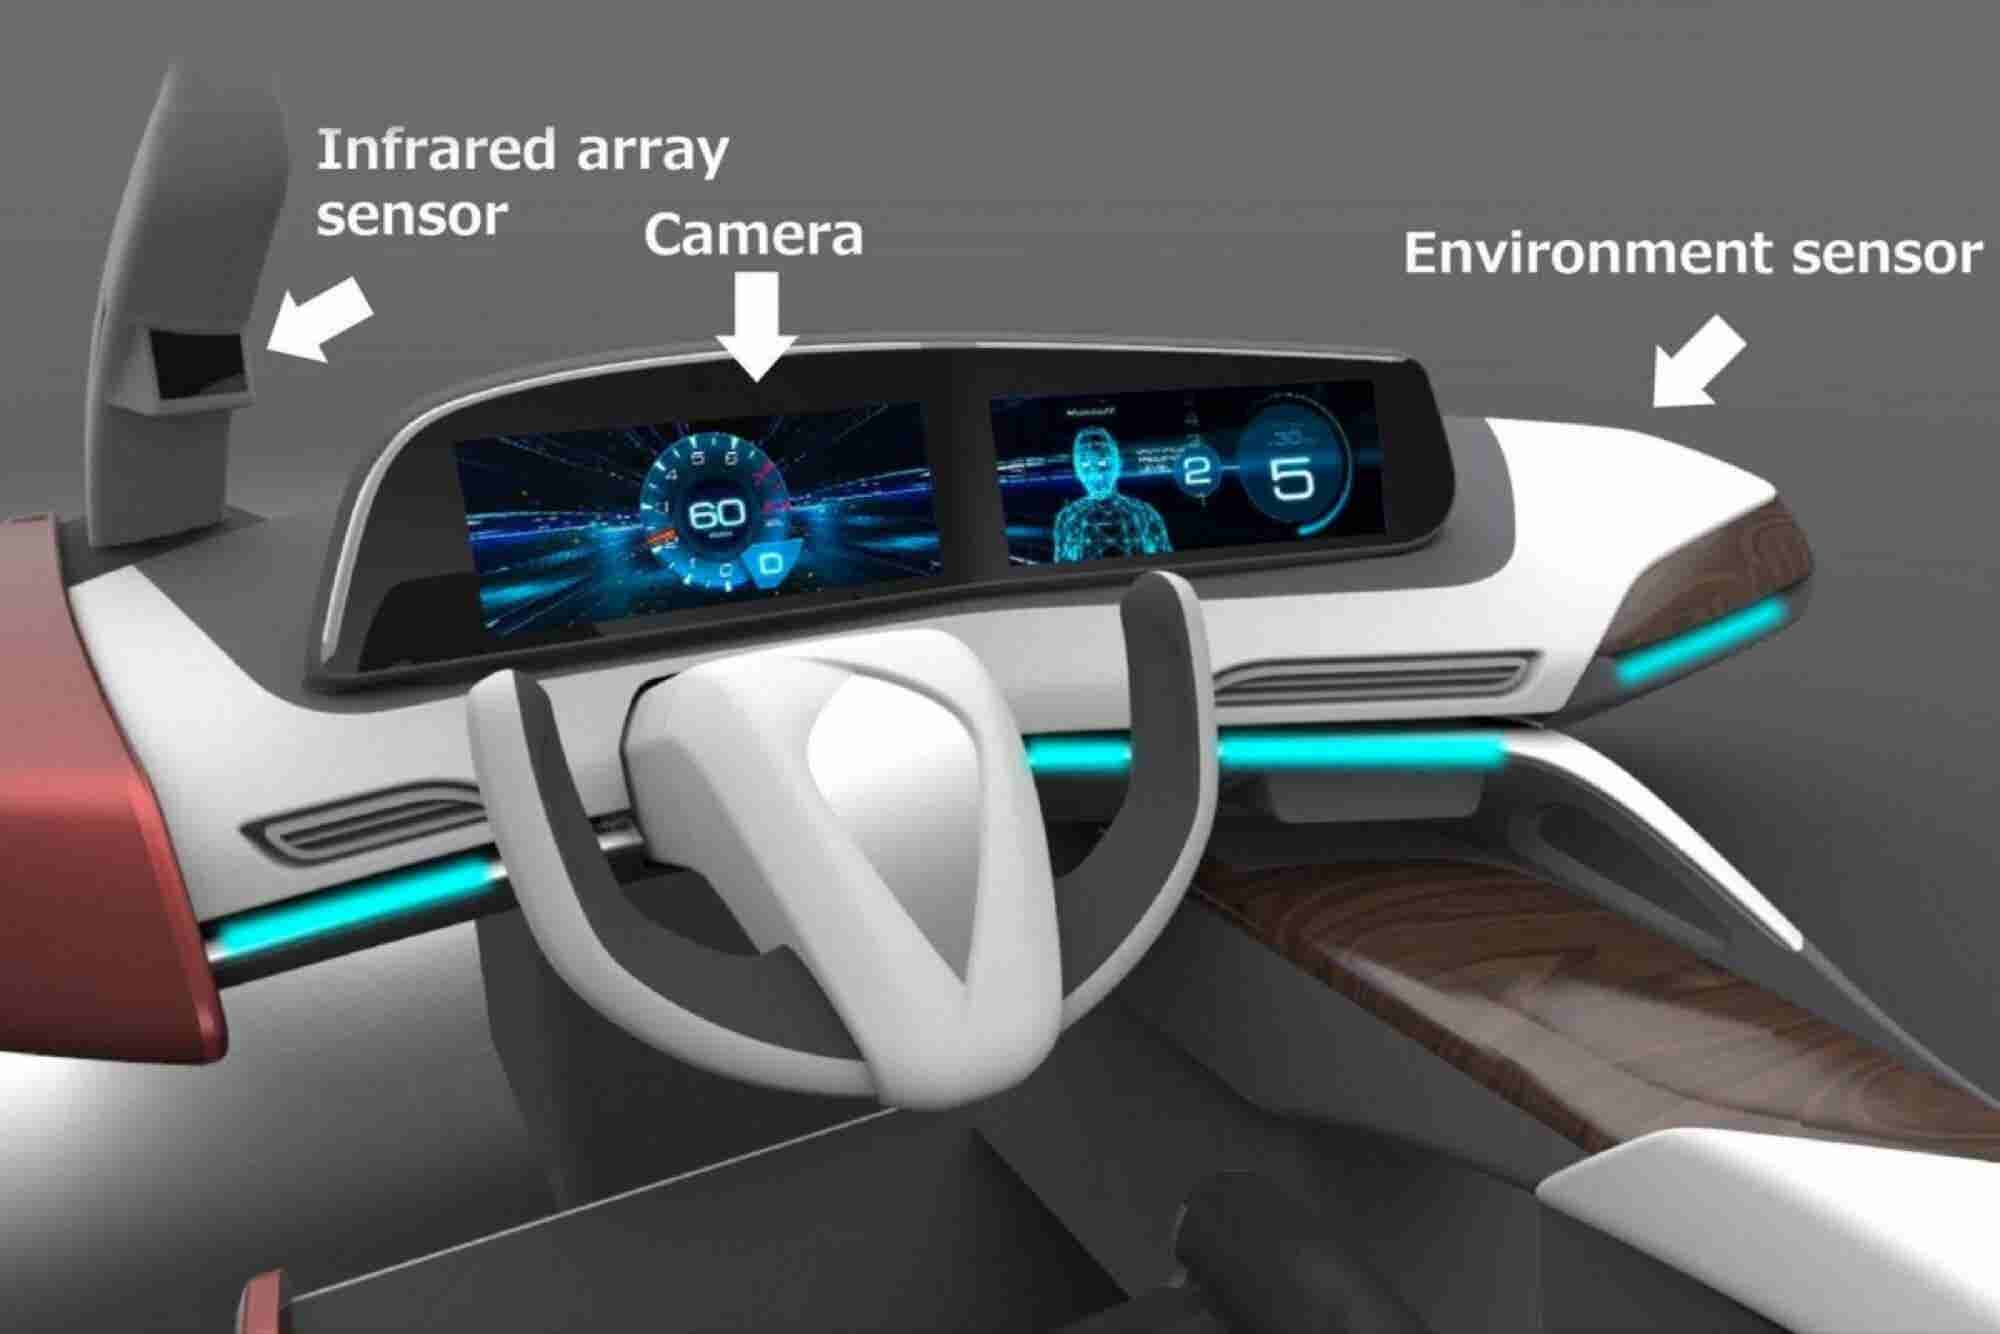 Panasonic Uses AI to Keep Drowsy Drivers Awake